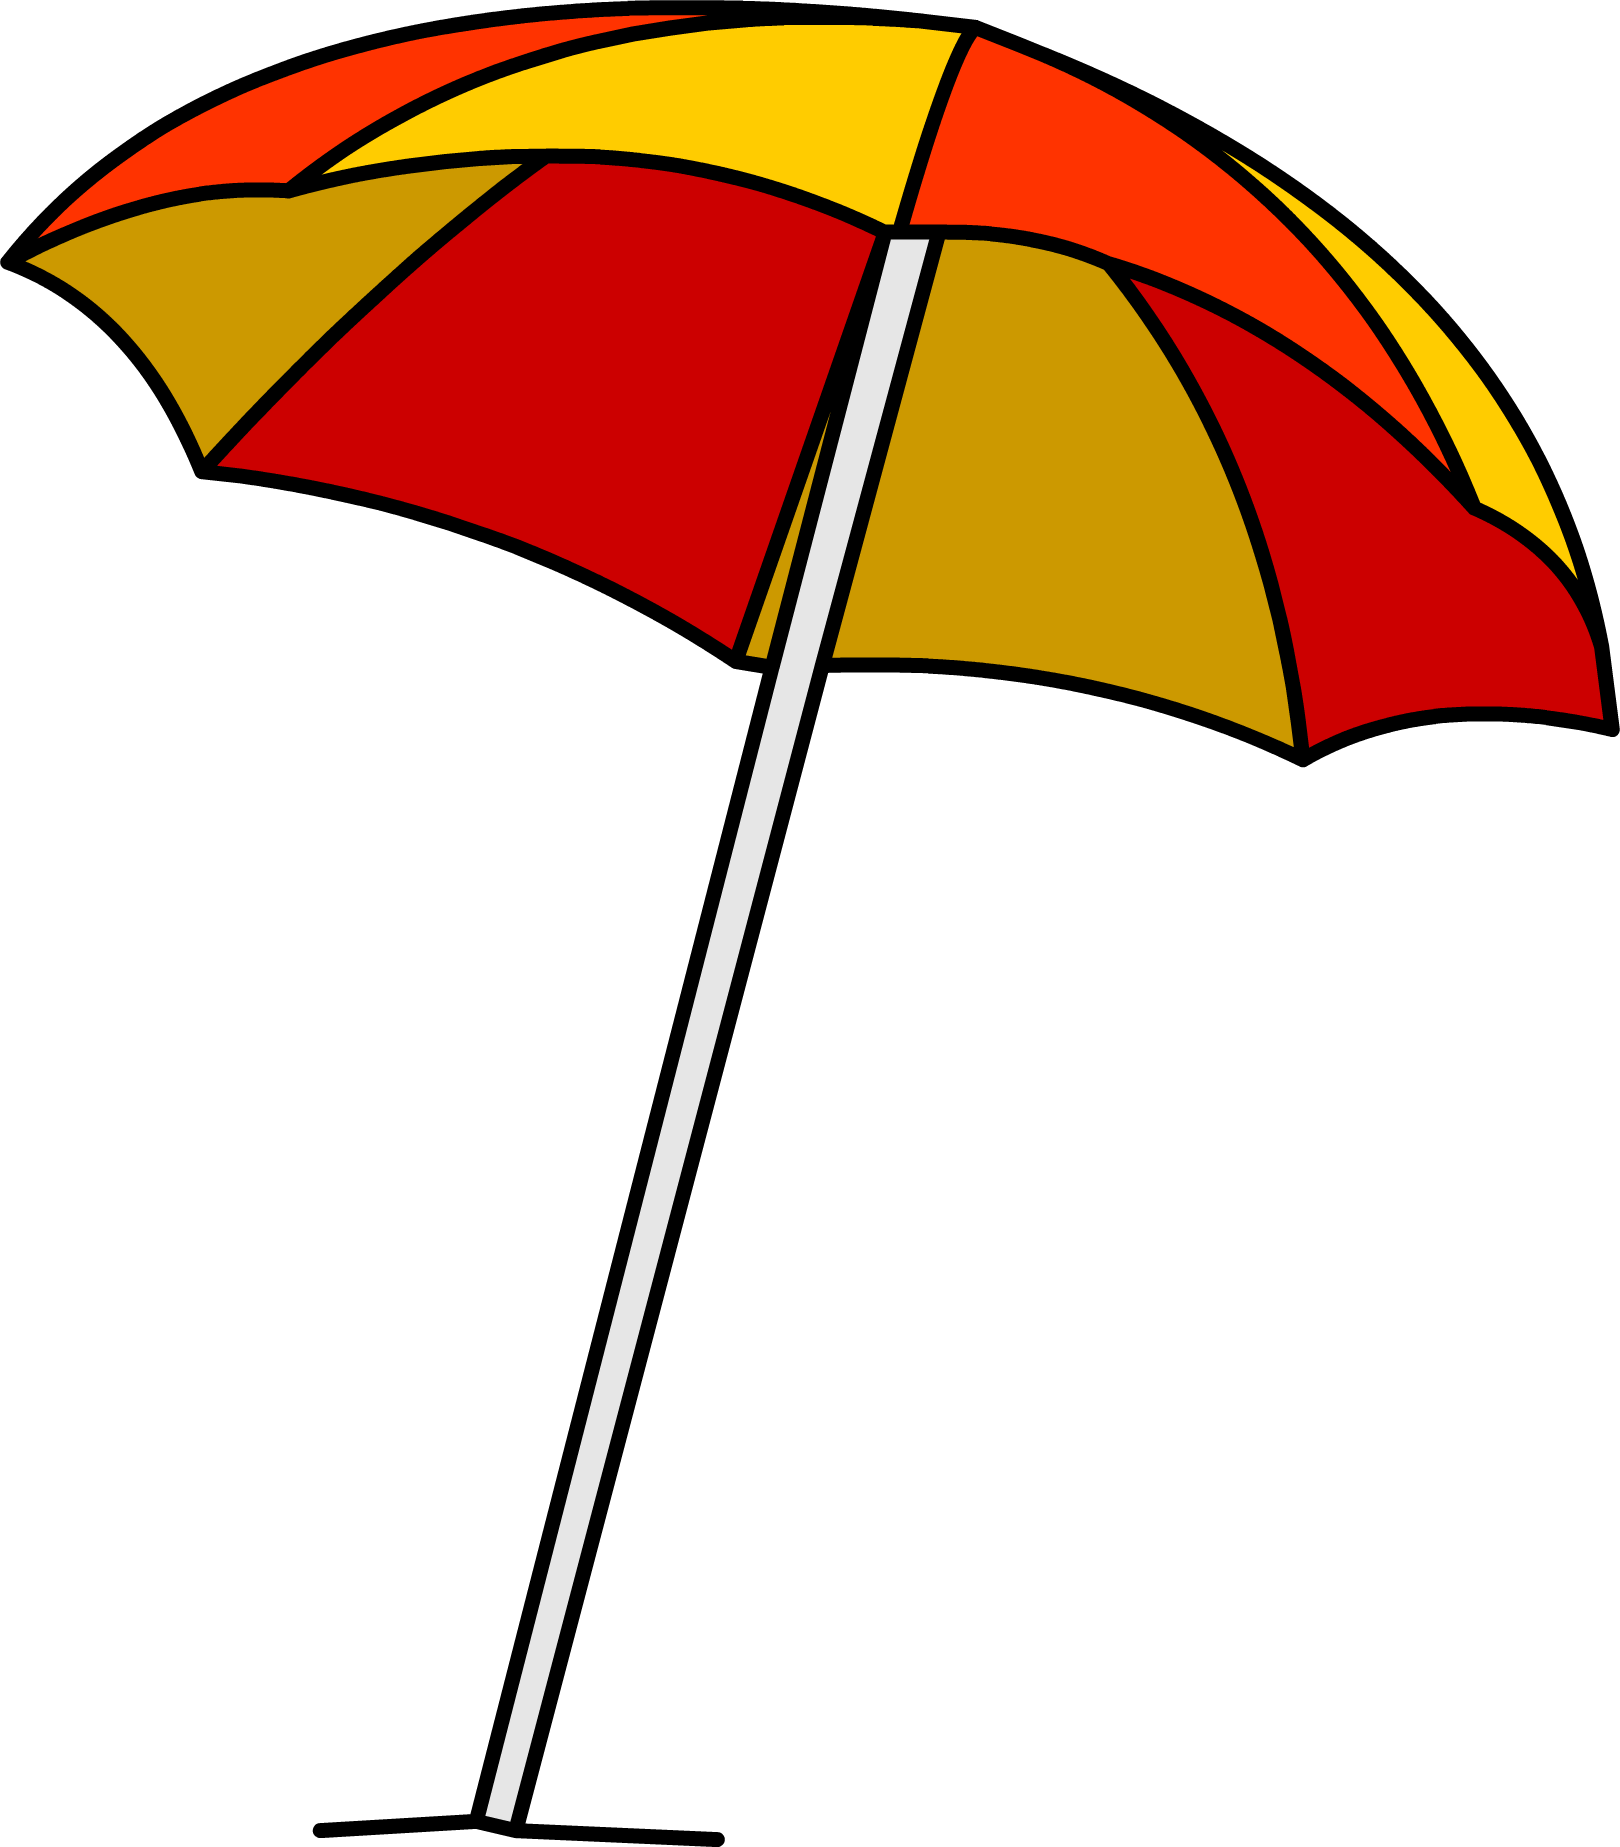 cartoon umbrella png